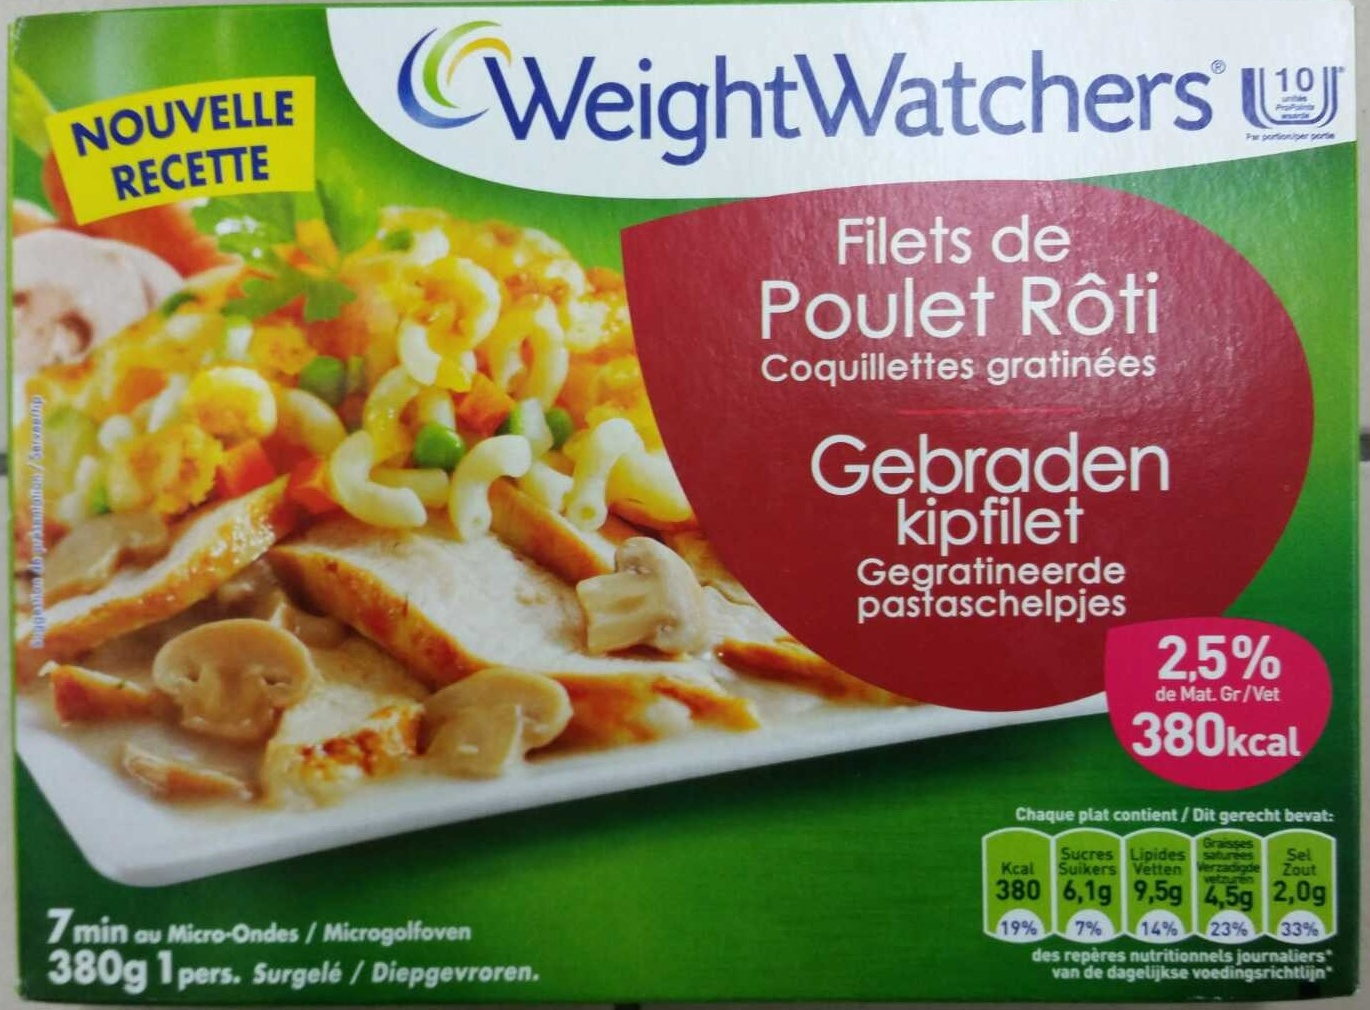 Filets De Poulet Roti Coquillettes Gratinees Weight Watchers